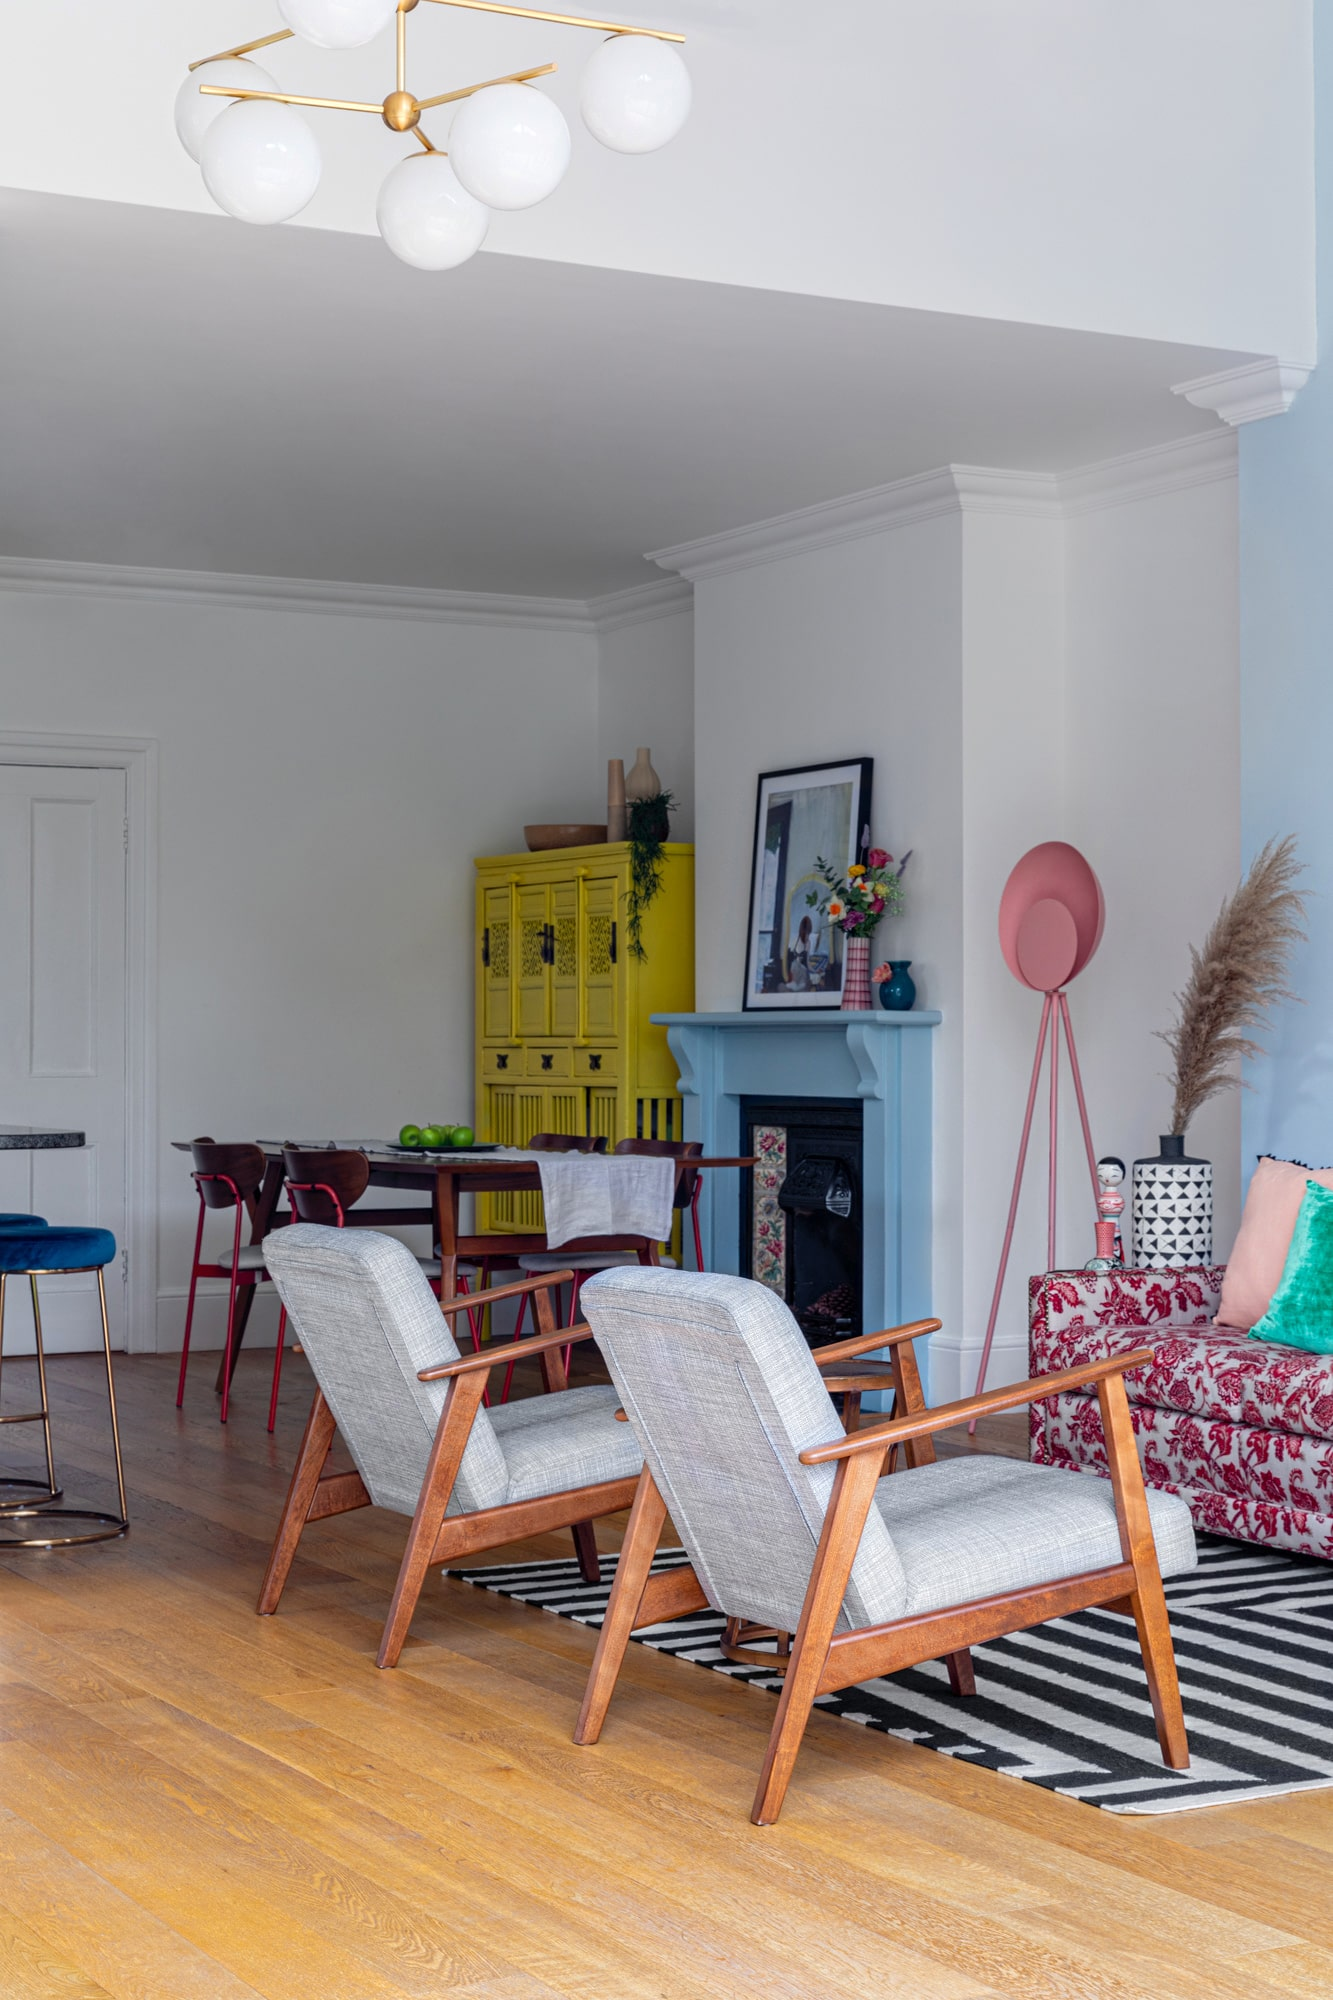 View through living area to dining area; armchairs and a corner of a sofa; blue fireplace; wooden diding table; yellow cabinet